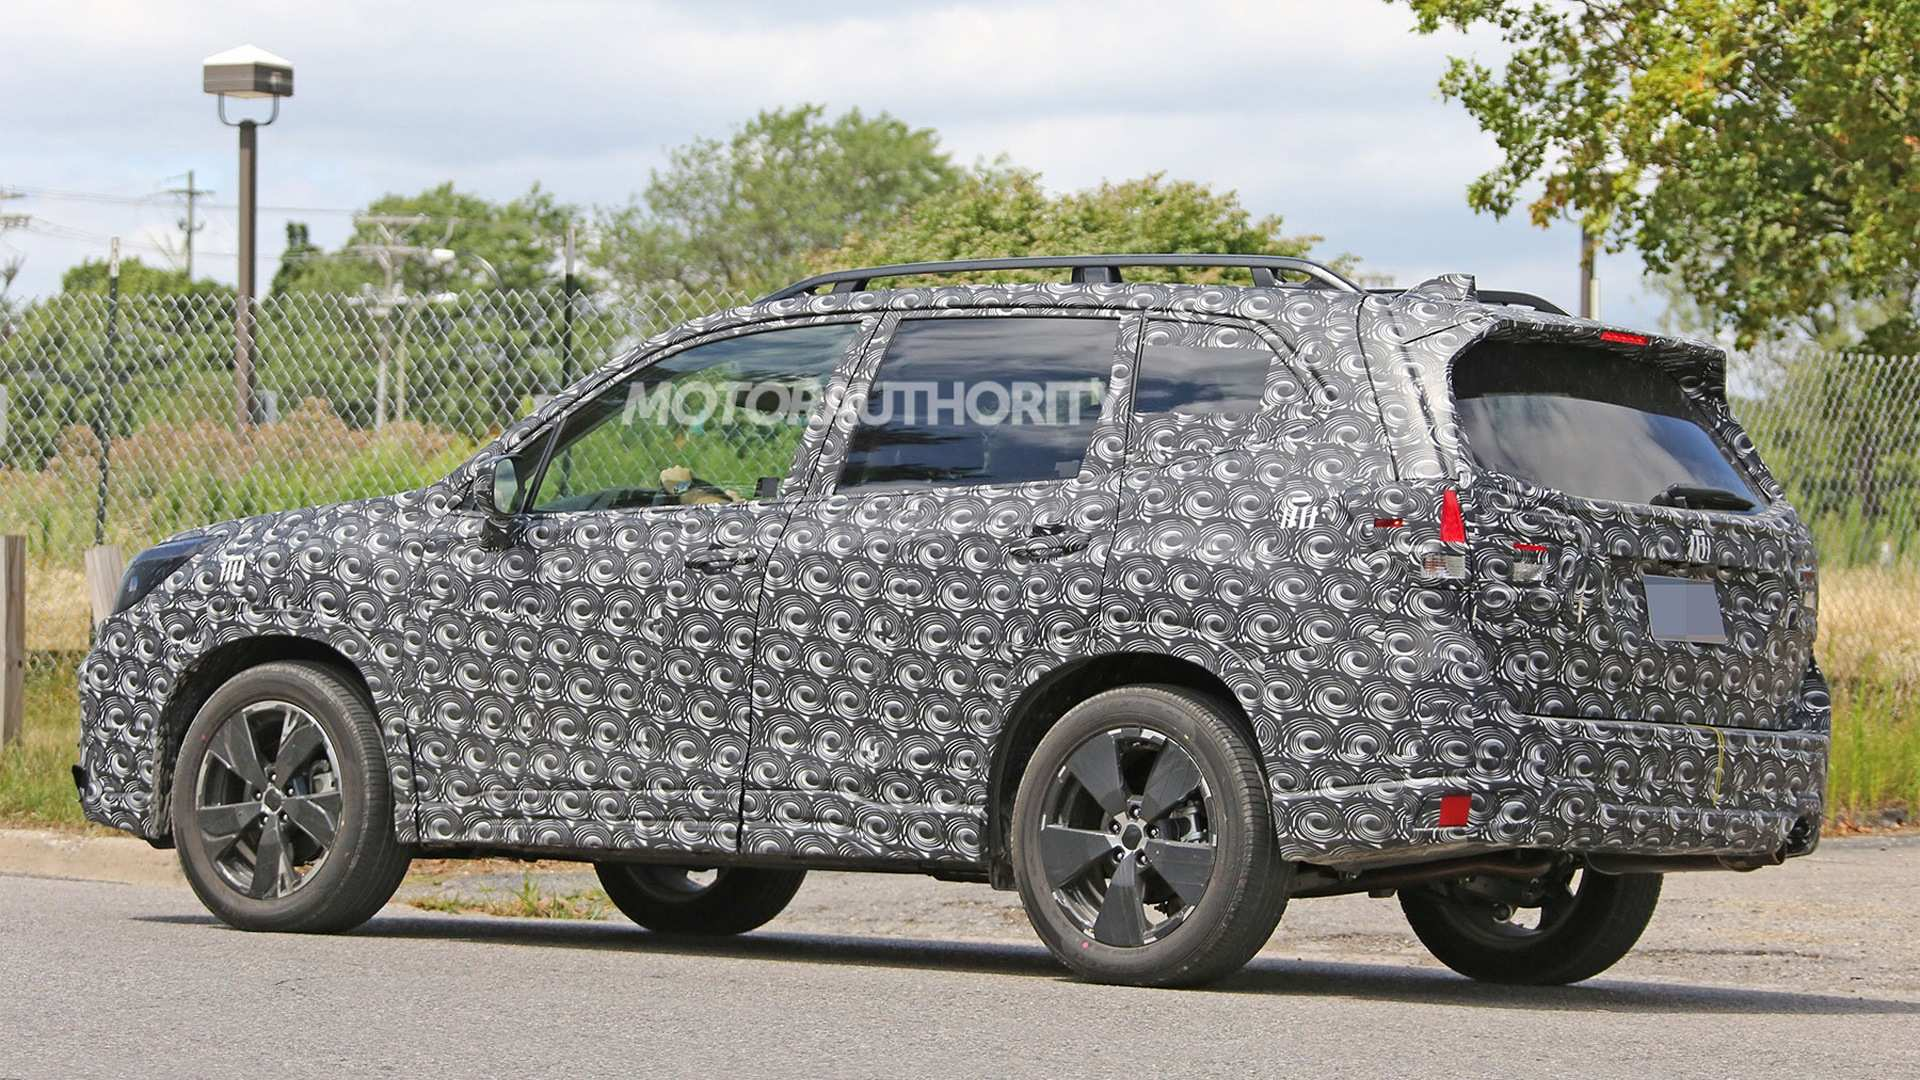 30 All New Subaru Forester 2019 Green Spy Shoot Style by Subaru Forester 2019 Green Spy Shoot